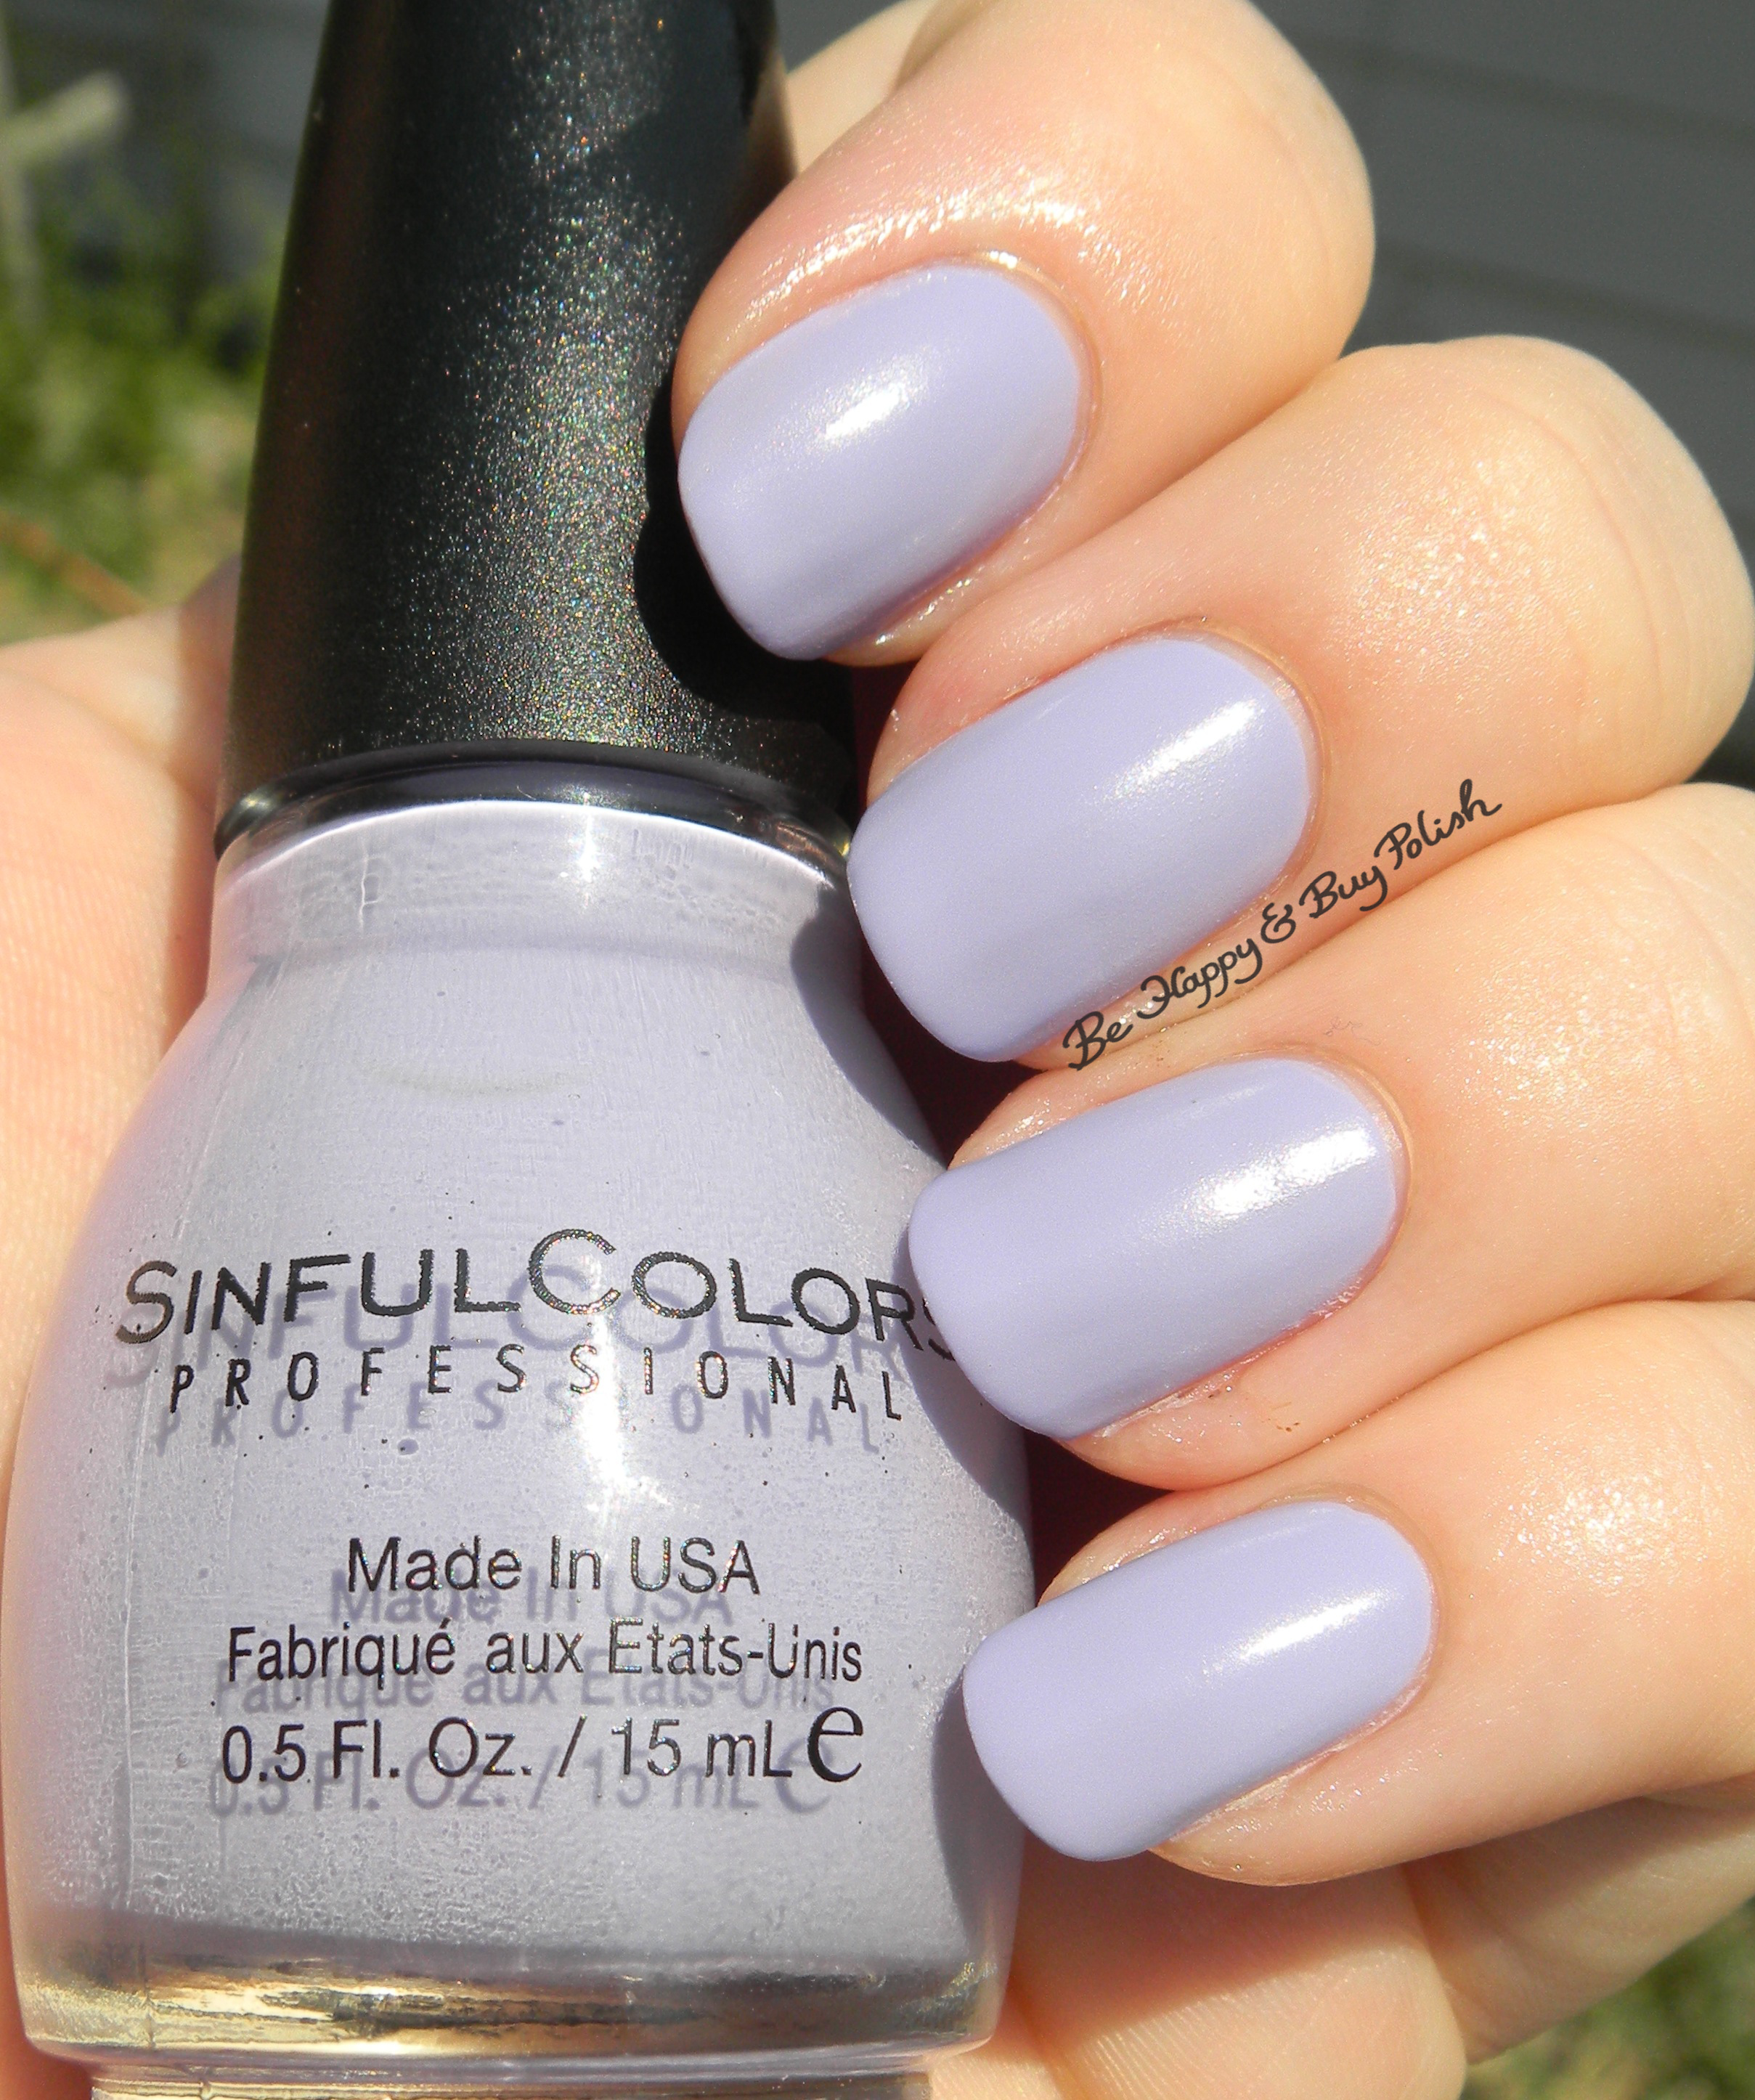 Sinful Colors A Class Act Nail Polishes (partial